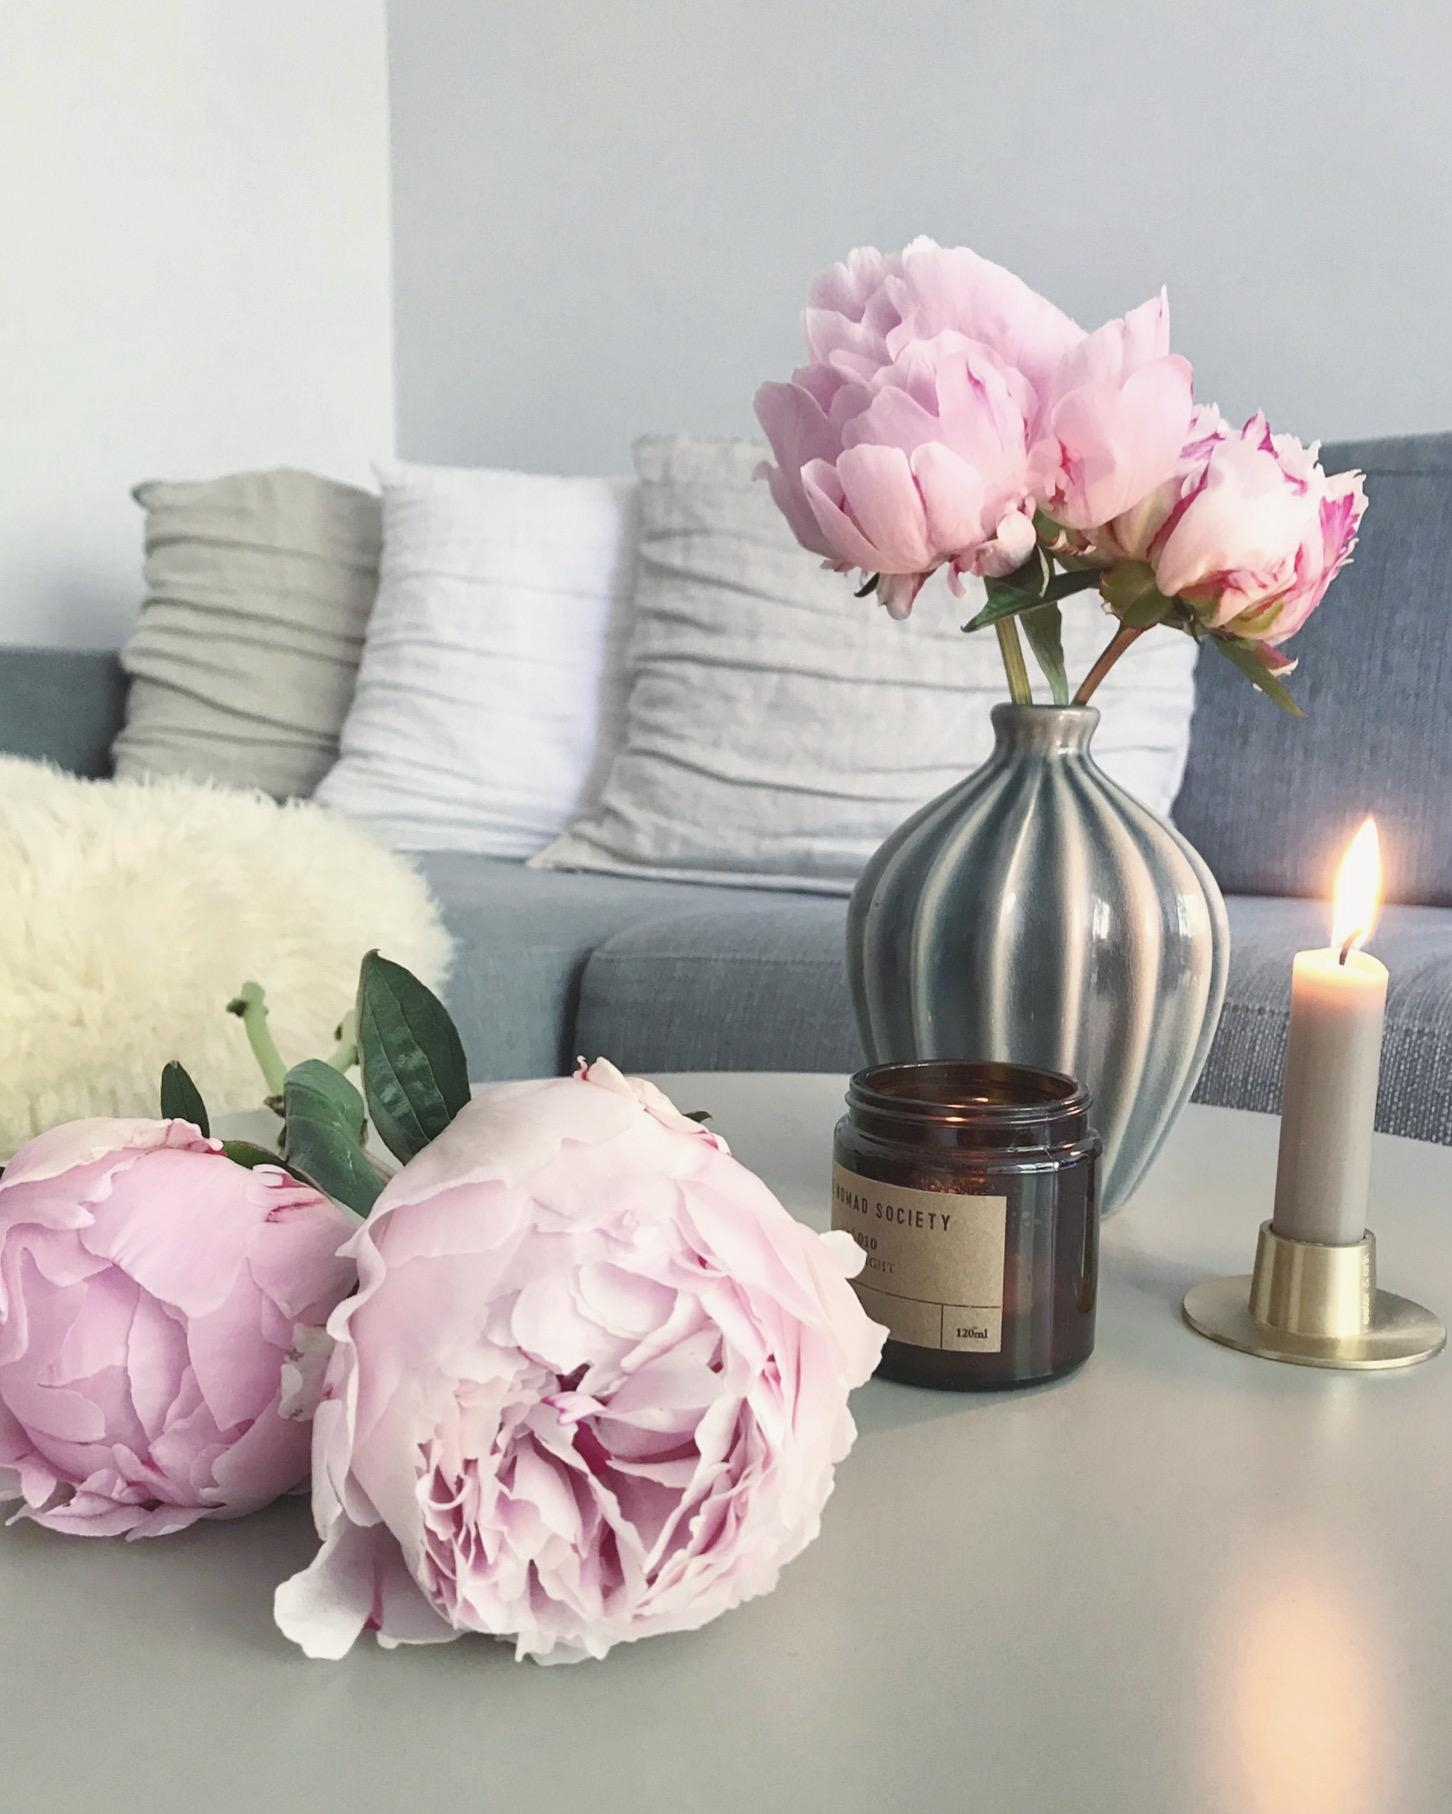 Home Sweet Home 🌸💖